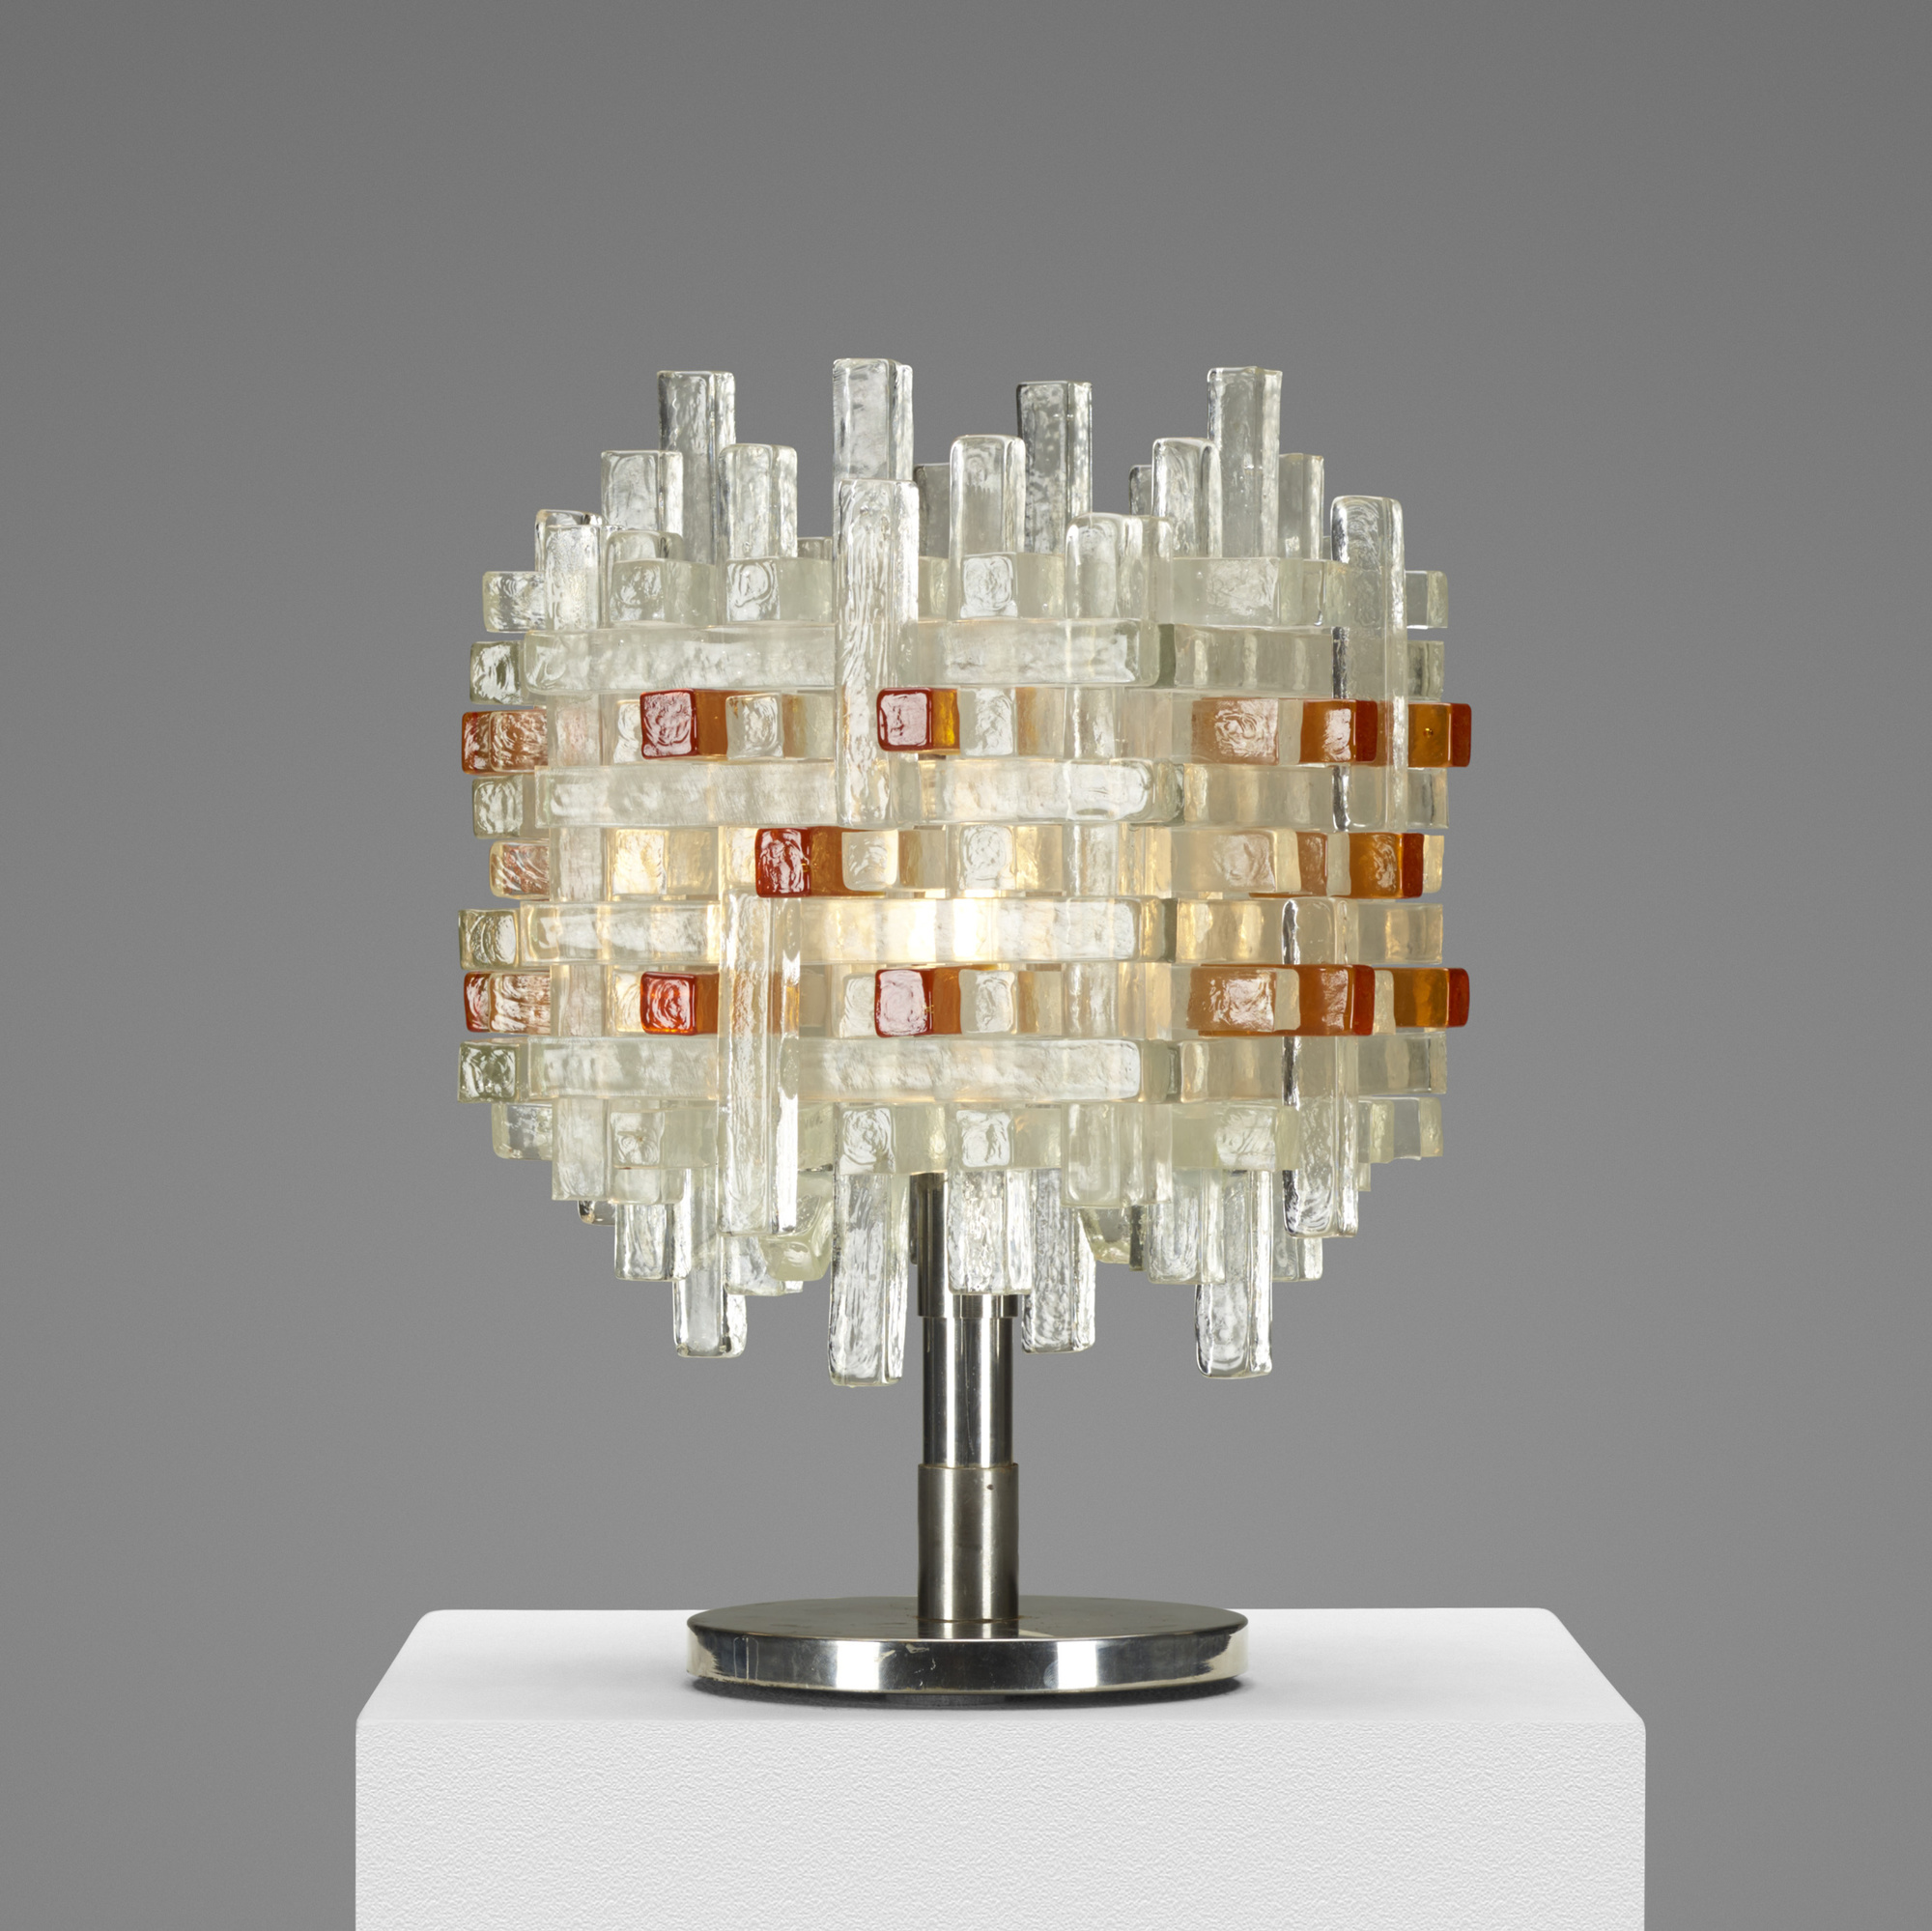 251: Poliarte / Mimas table lamp (1 of 3)